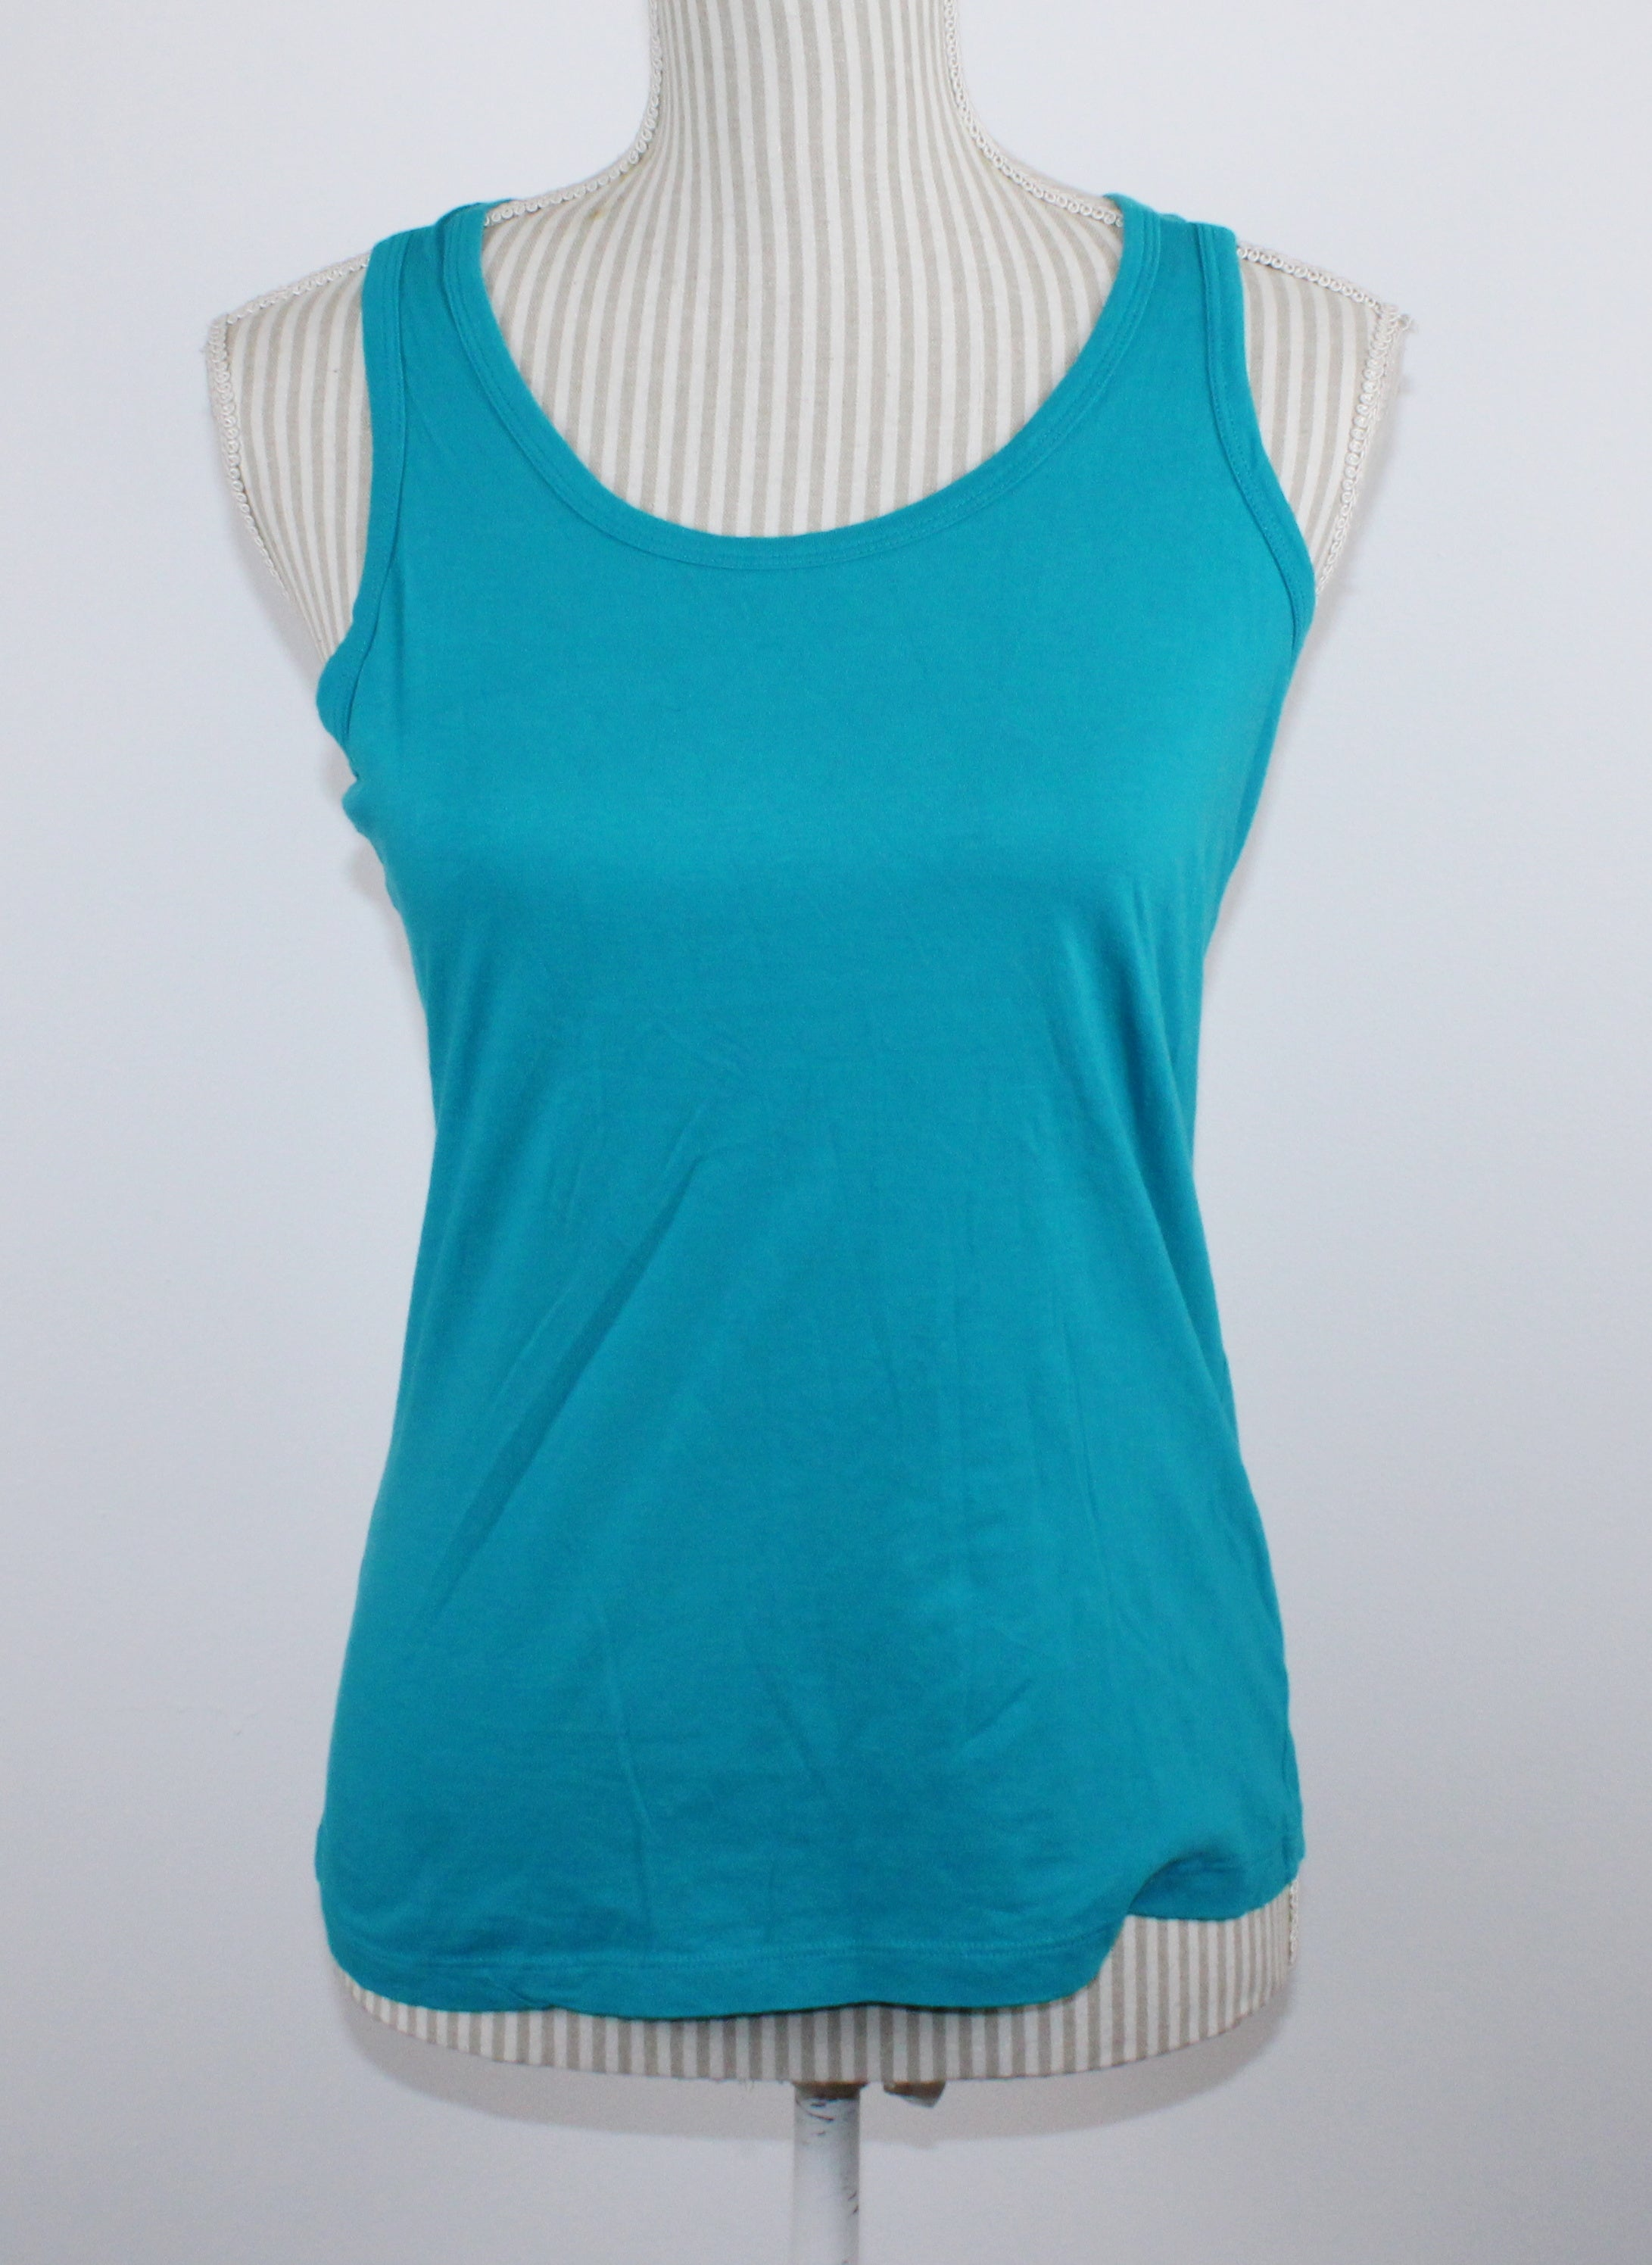 RICKI'S BLACK FLORAL TOP LADIES XL EUC